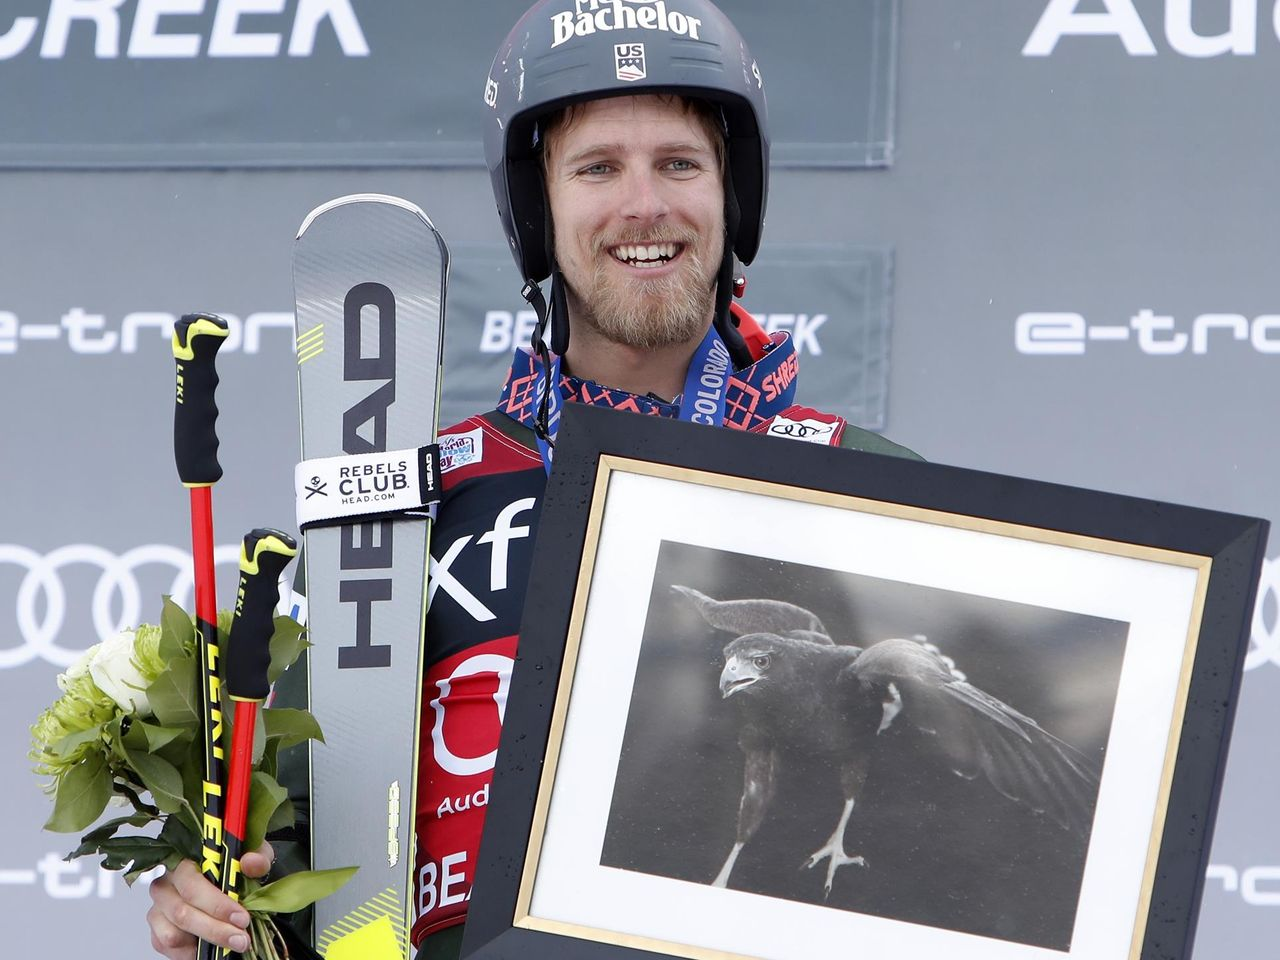 Tommy Ford Claims Maiden World Cup Success Eurosport